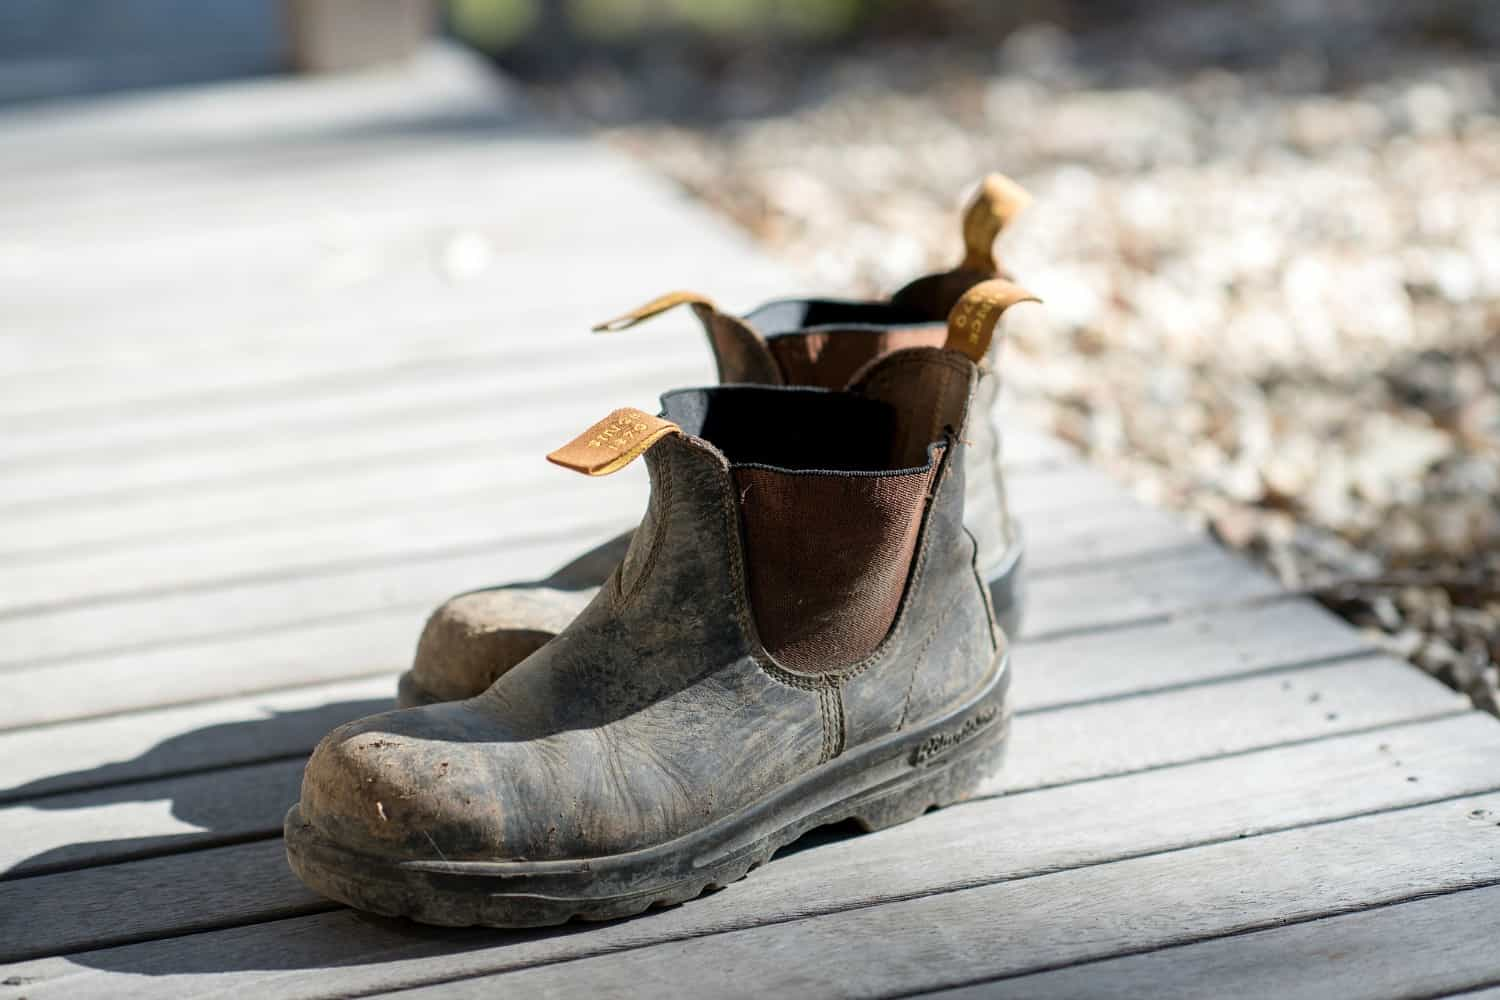 care for Dirty shoes in monsoon